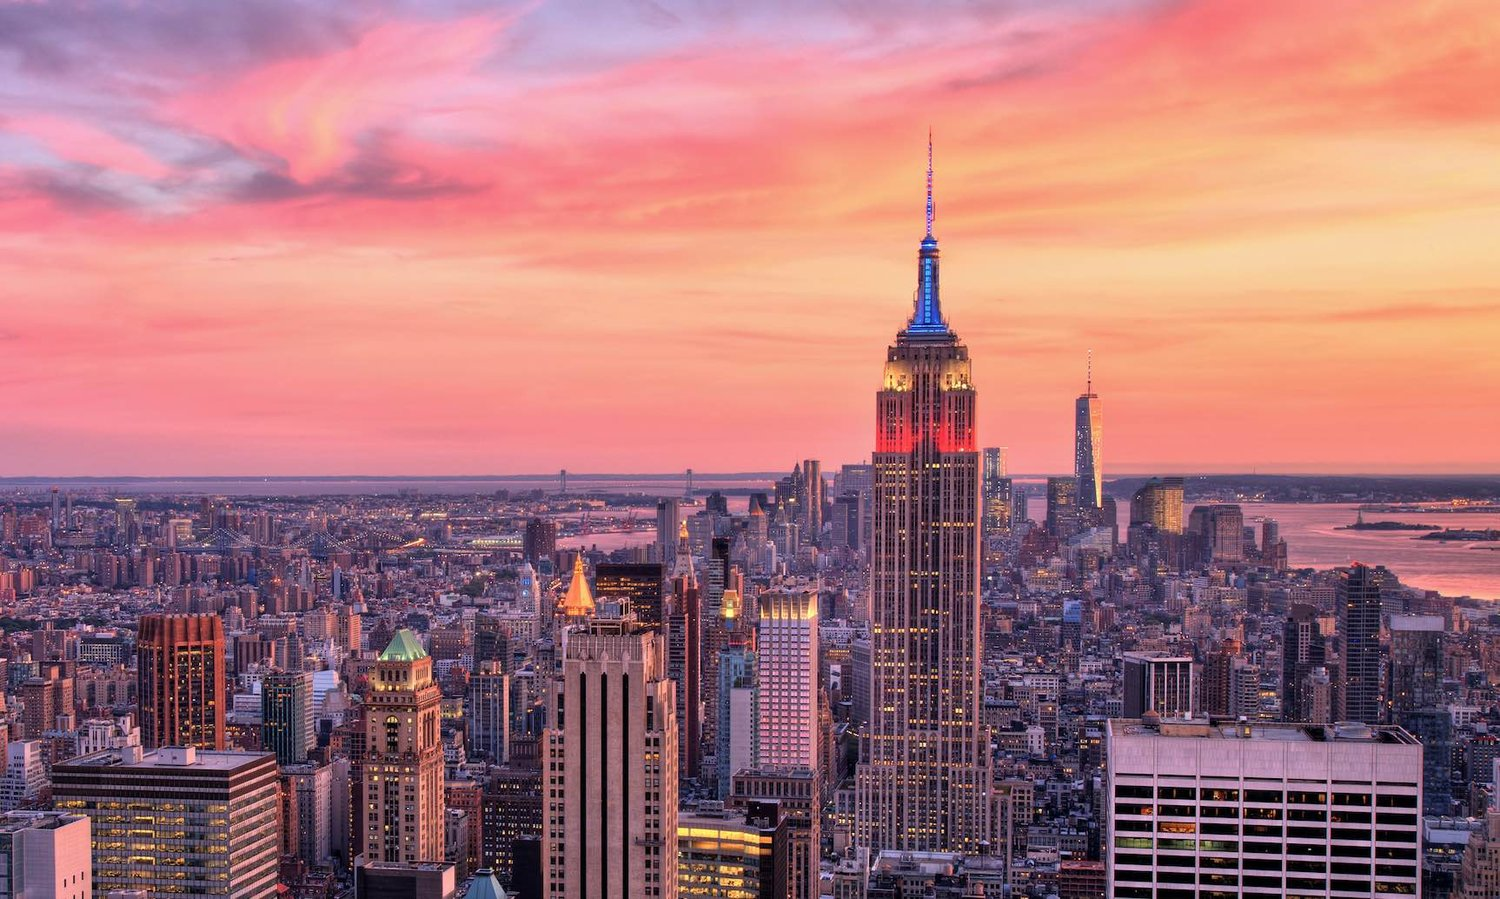 Hotels With Best Views In Nyc The Most Perfect View - Stunning-art-deco-with-spectacular-river-and-city-views